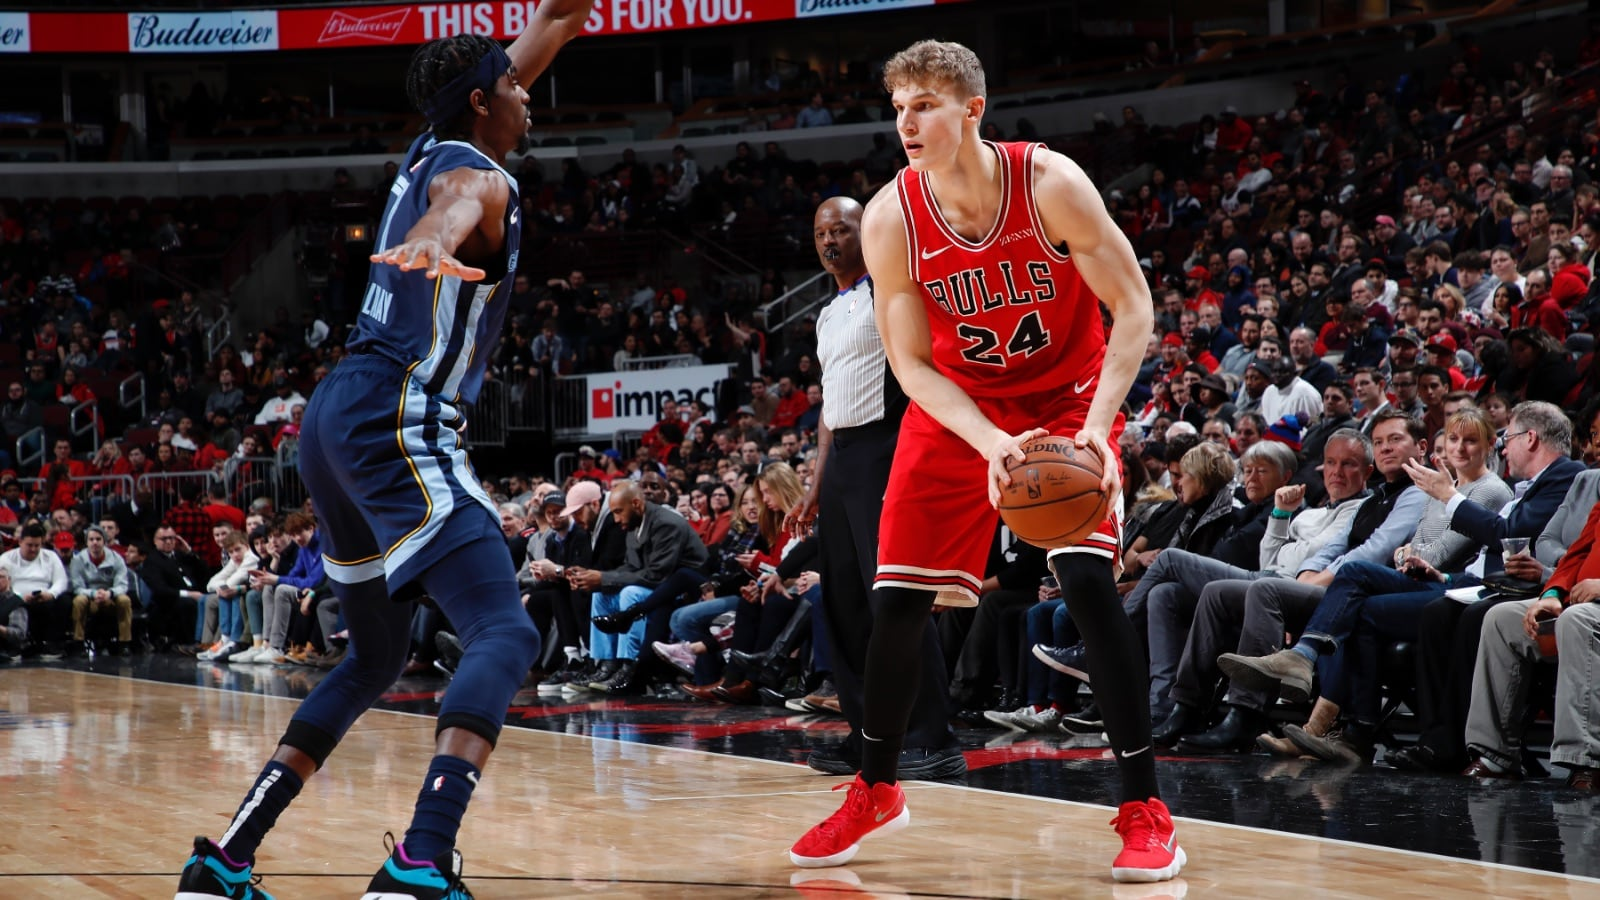 Lauri looks to attack